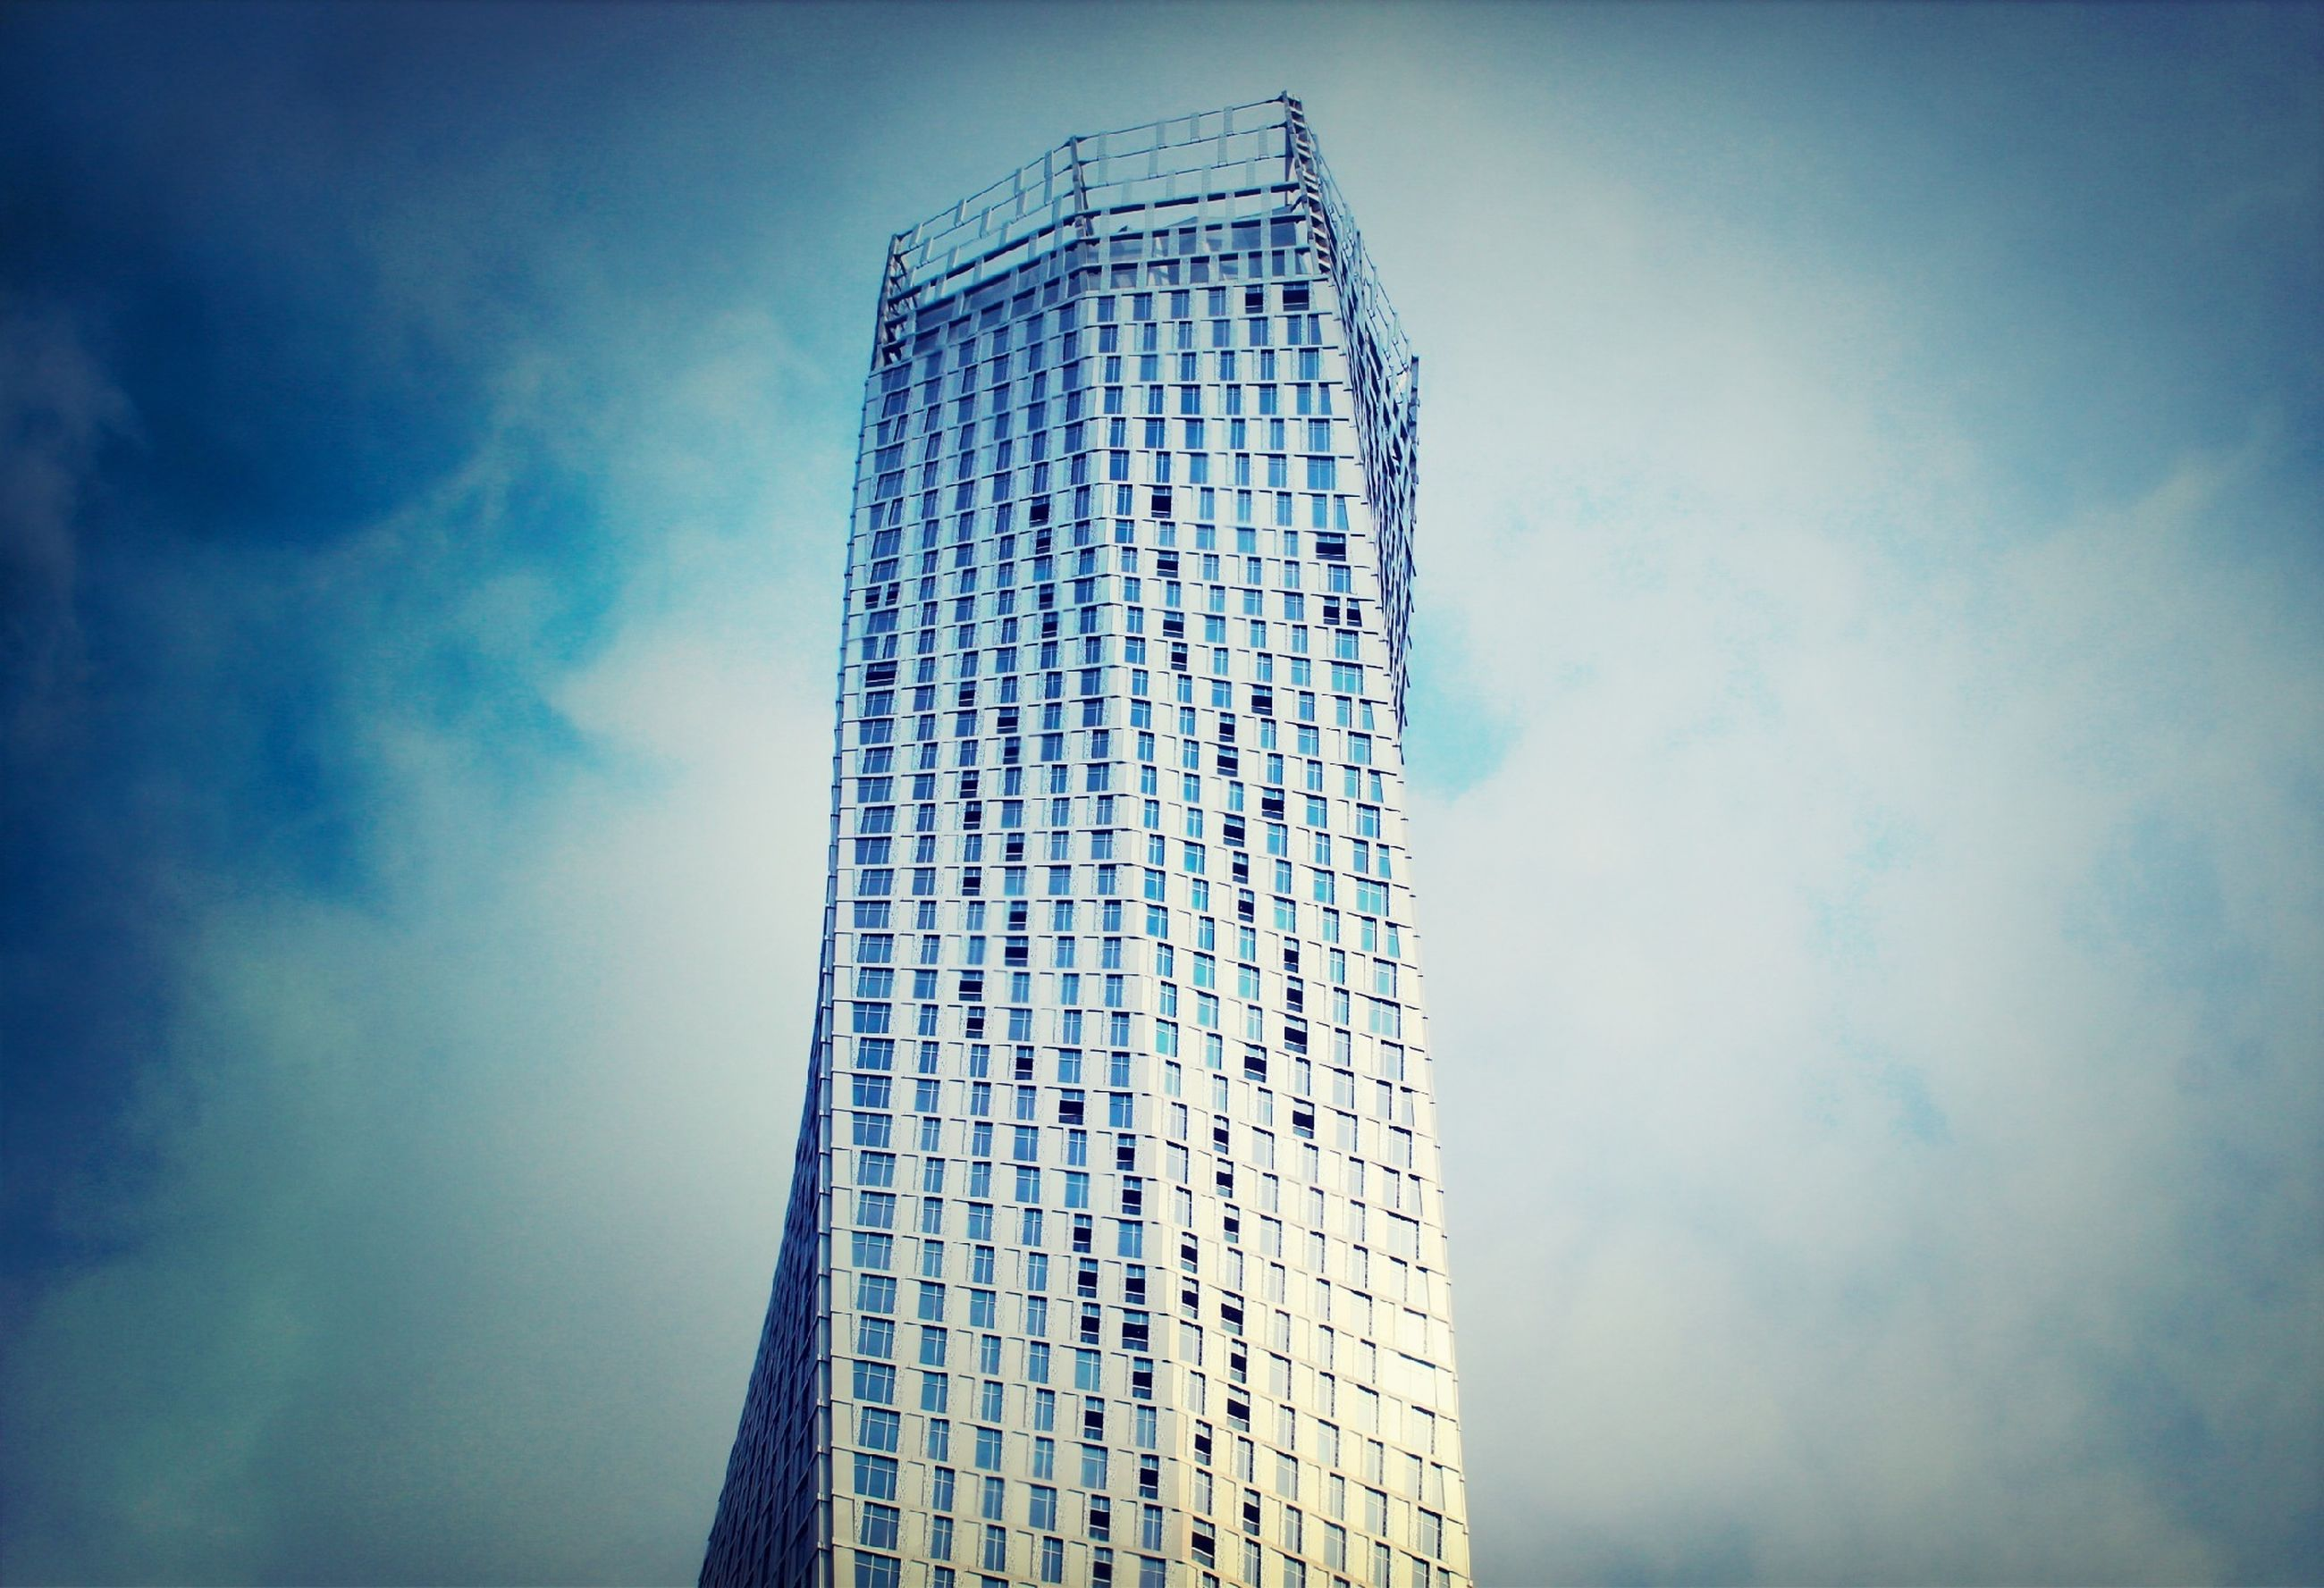 low angle view, sky, building exterior, architecture, built structure, modern, tall - high, cloud - sky, skyscraper, blue, office building, tower, city, cloud, building, tall, day, outdoors, cloudy, no people